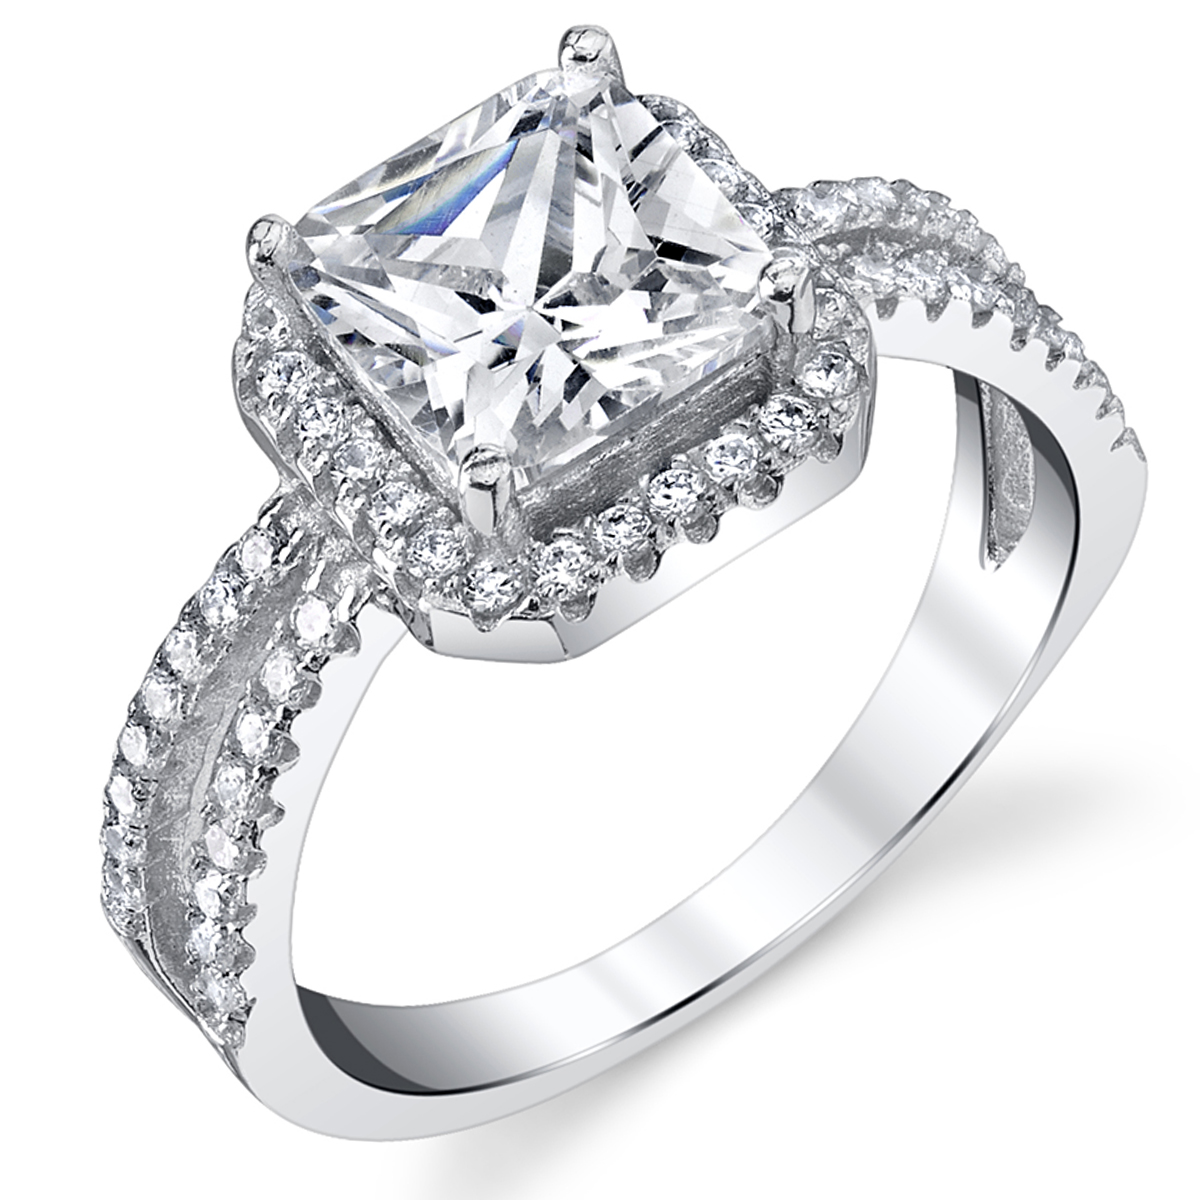 2 Carat Princess Cut Cubic Zirconia Sterling Silver 925 Wedding Engagement Ring Sizes 4 to 10